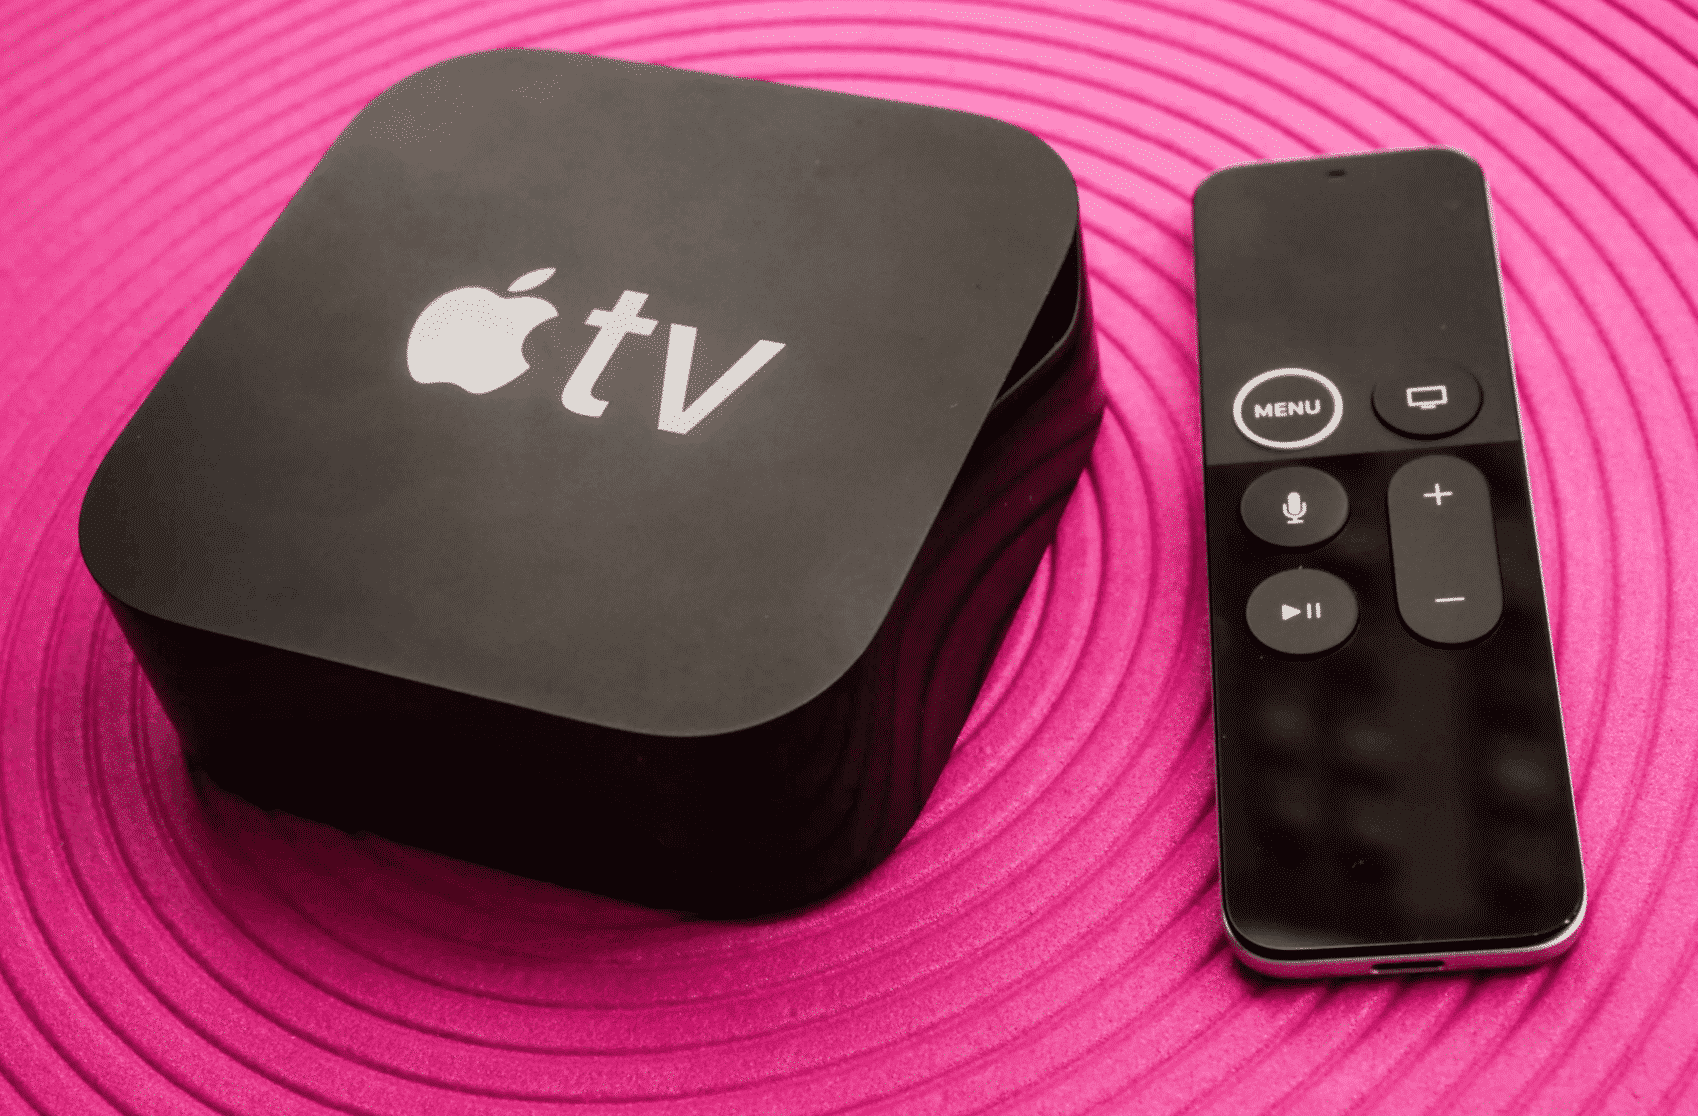 Apple TV 4K that is now on sale for Cyber Monday.